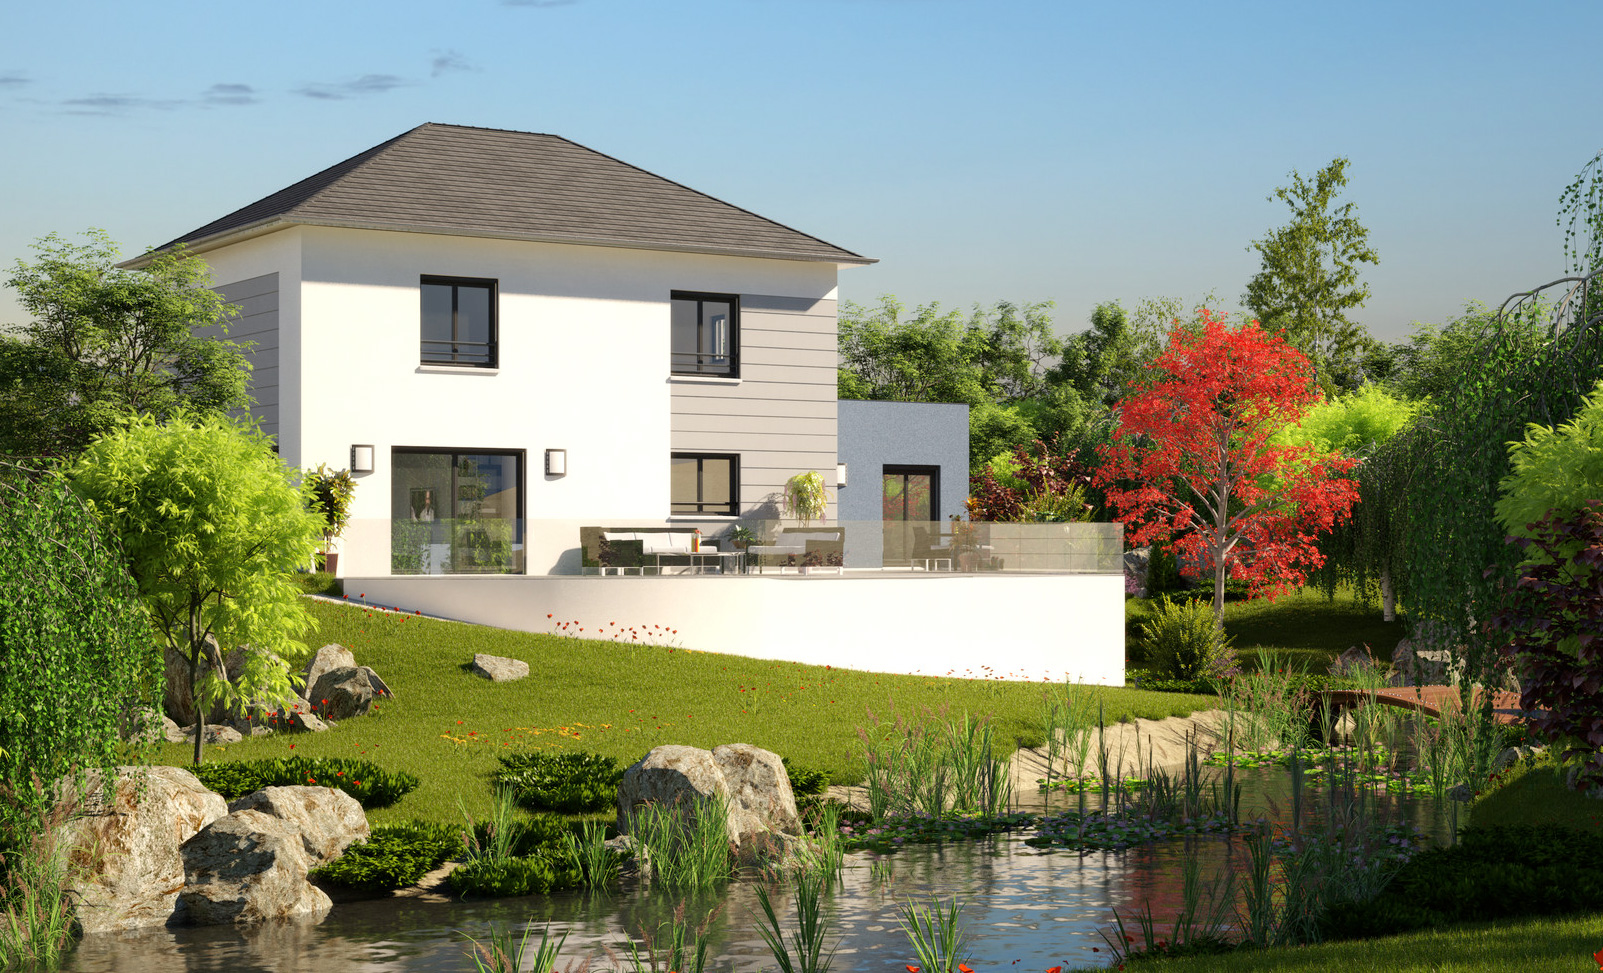 Mod le et plans madison du constructeur maisons barbey for Modele maison constructeur